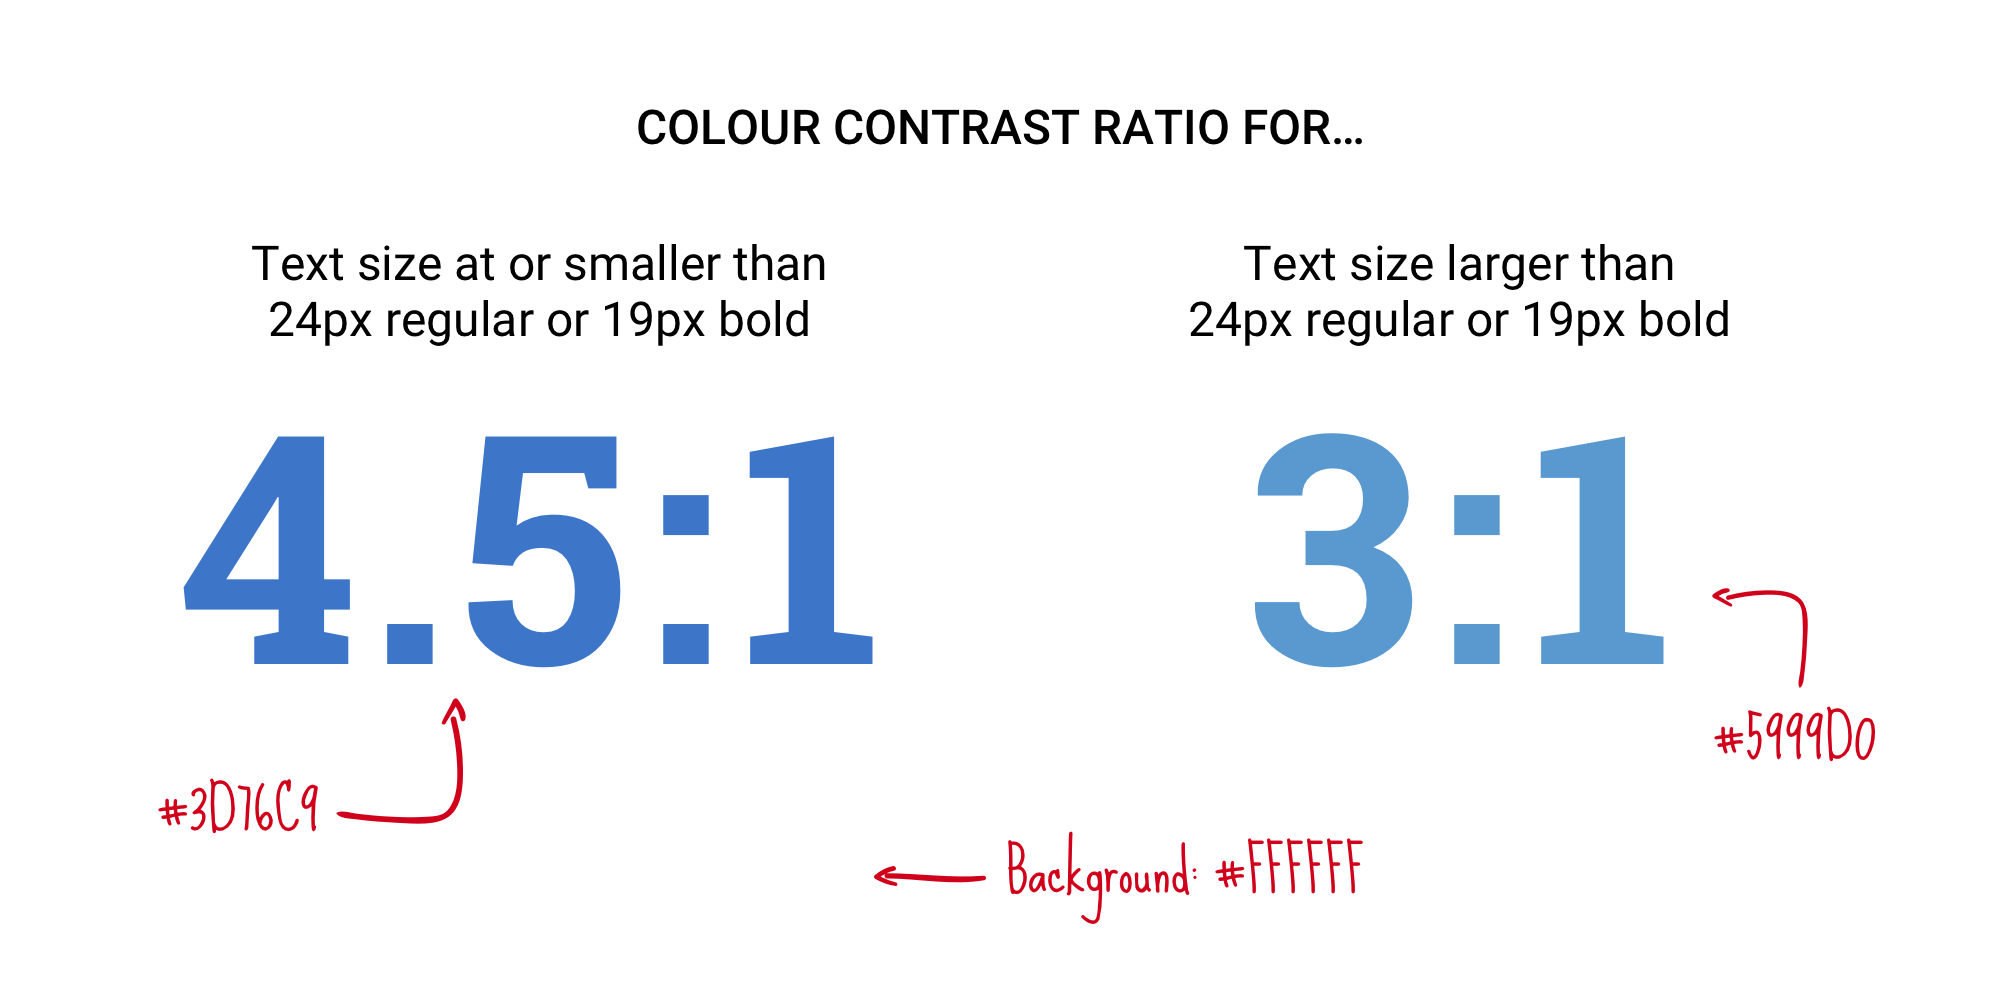 Colour contrast ratio for large and small text.